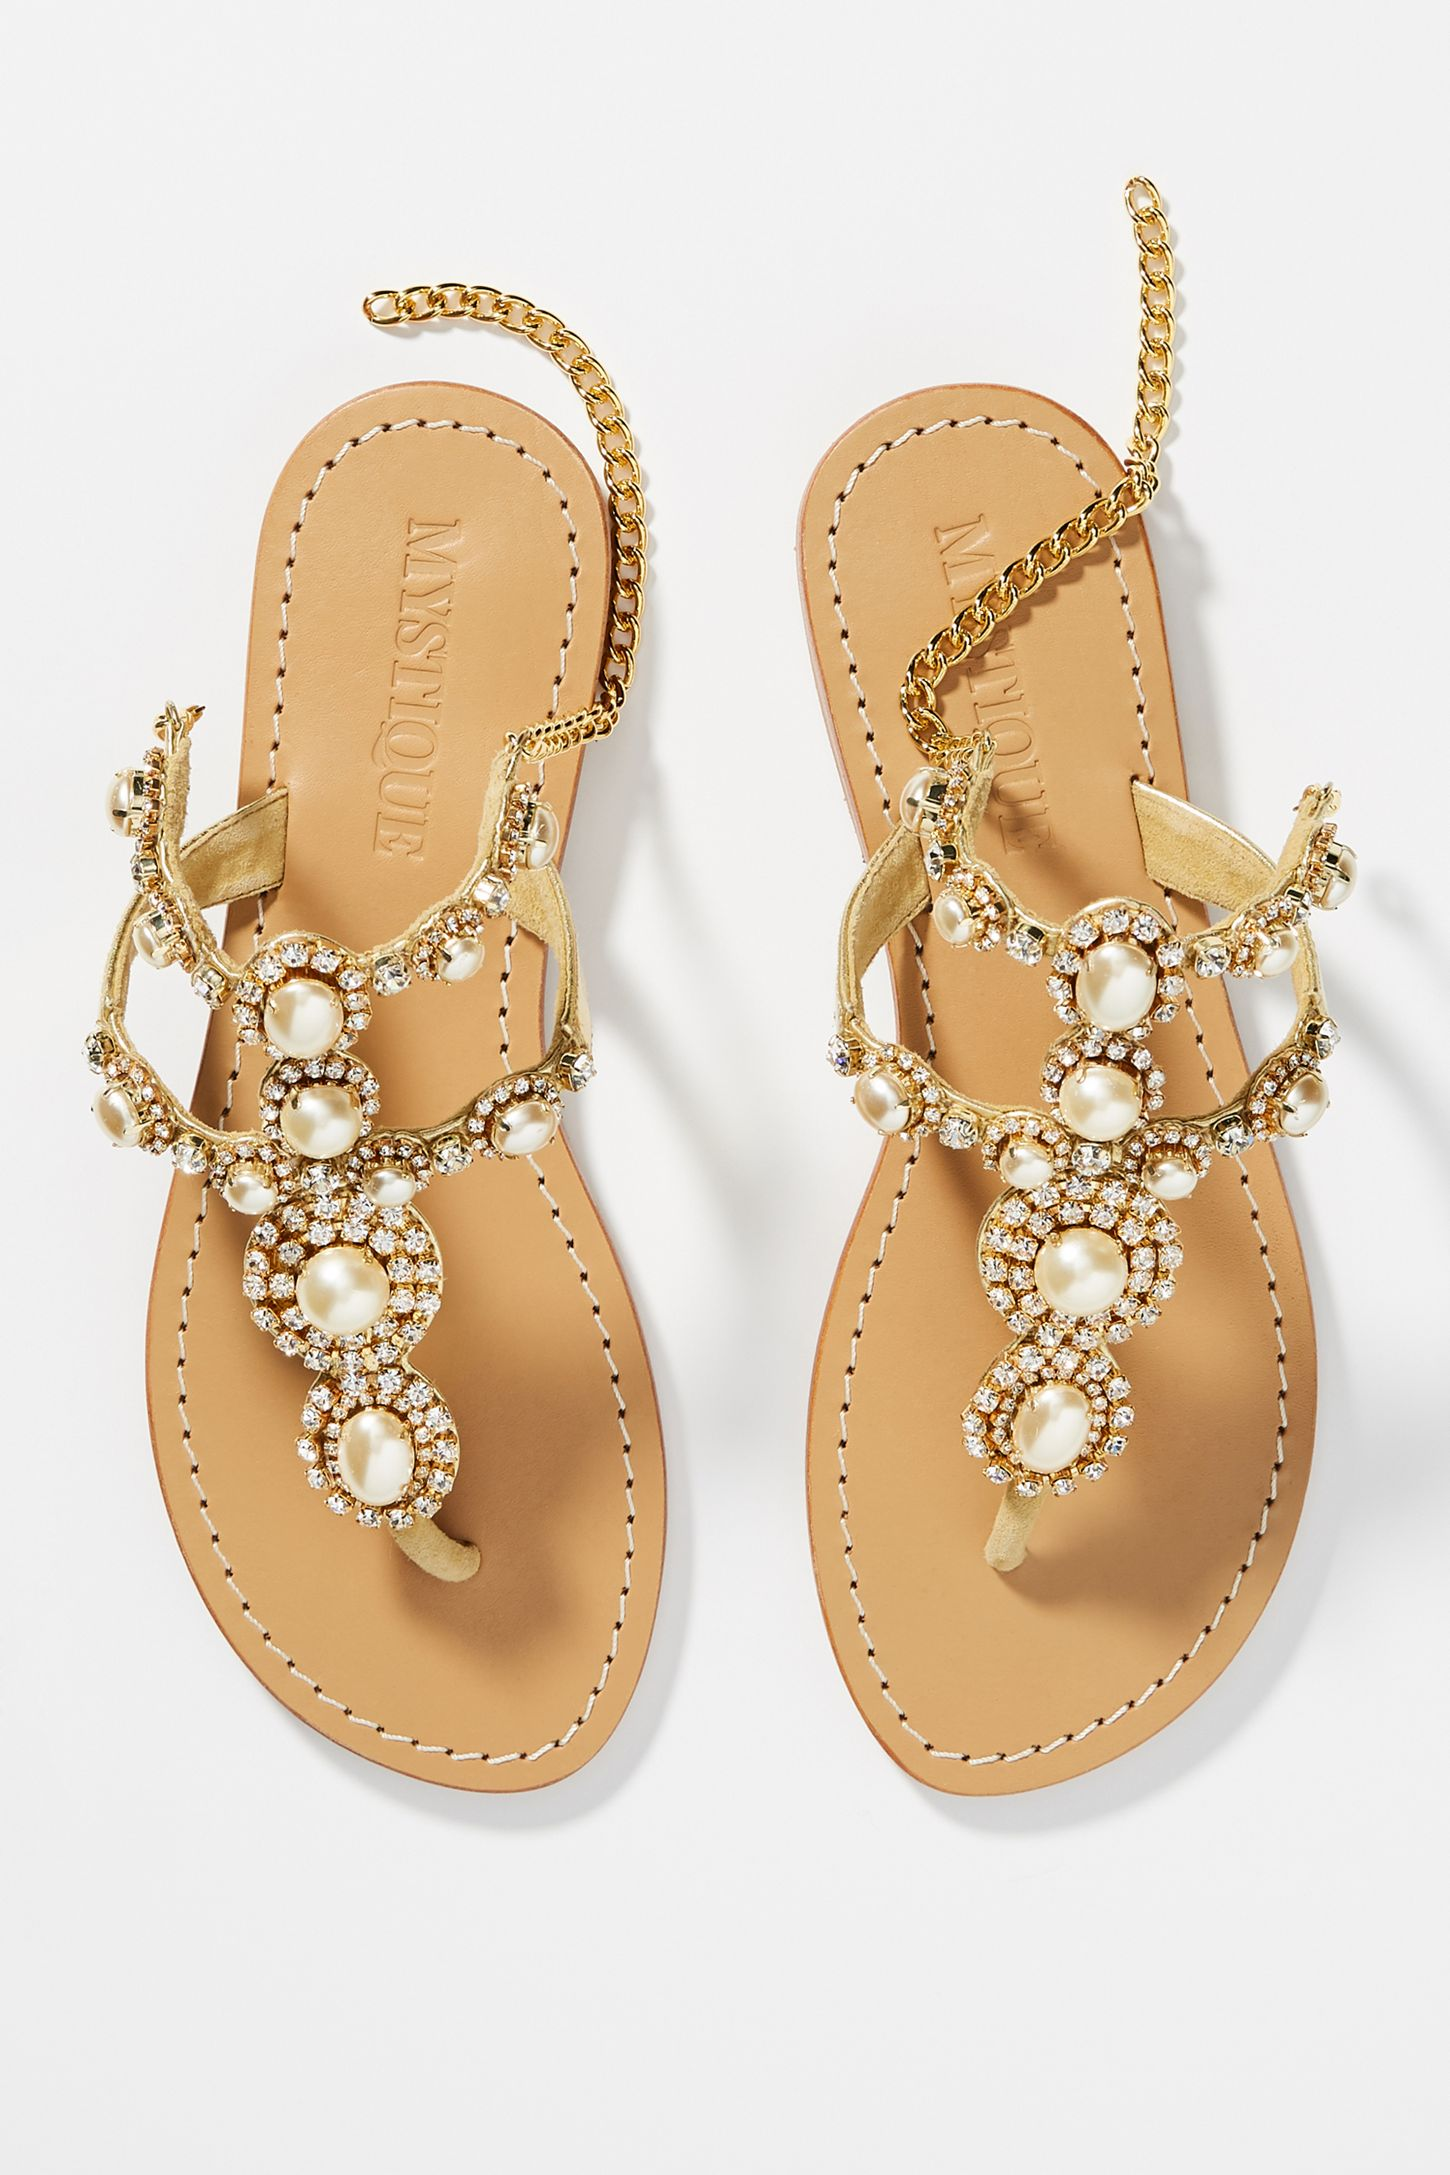 fd2dedb846495 Mystique Gold Pearl Sandals